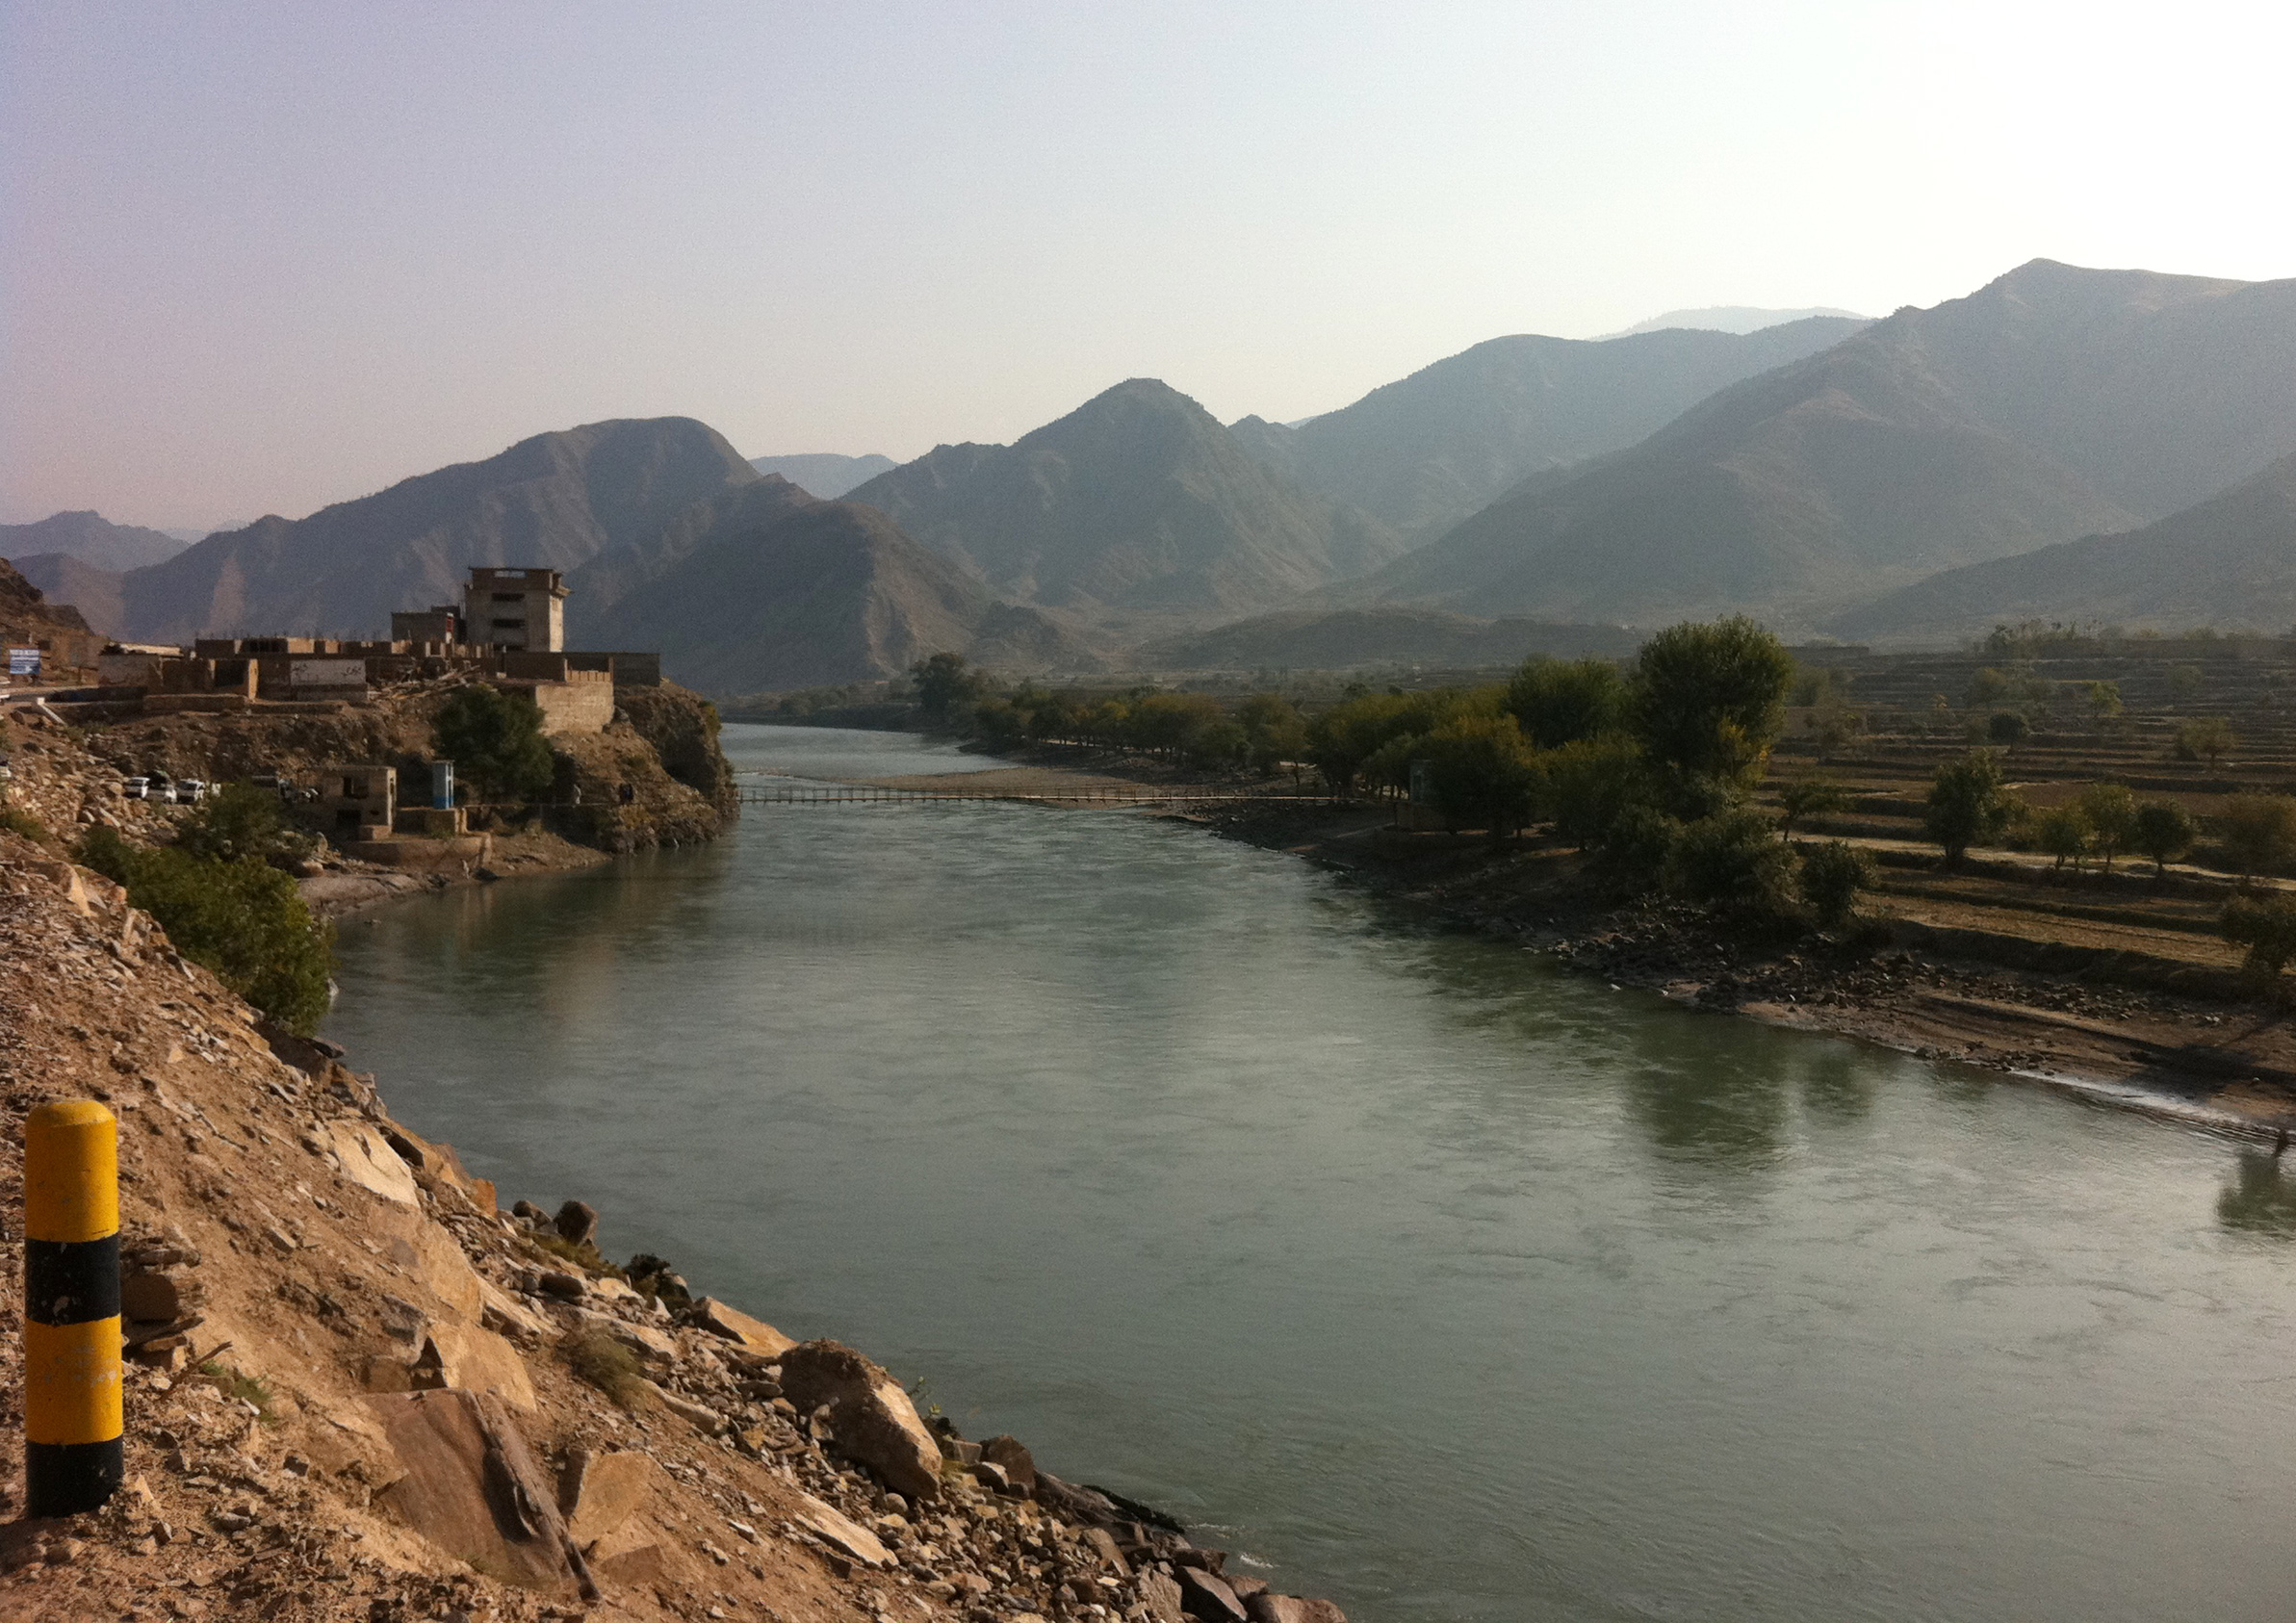 Marawara district in eastern Kunar province shares a border with Pakistan. Dangam district, the most affected area in the recent cross-border attacks is situated directly above Marawara